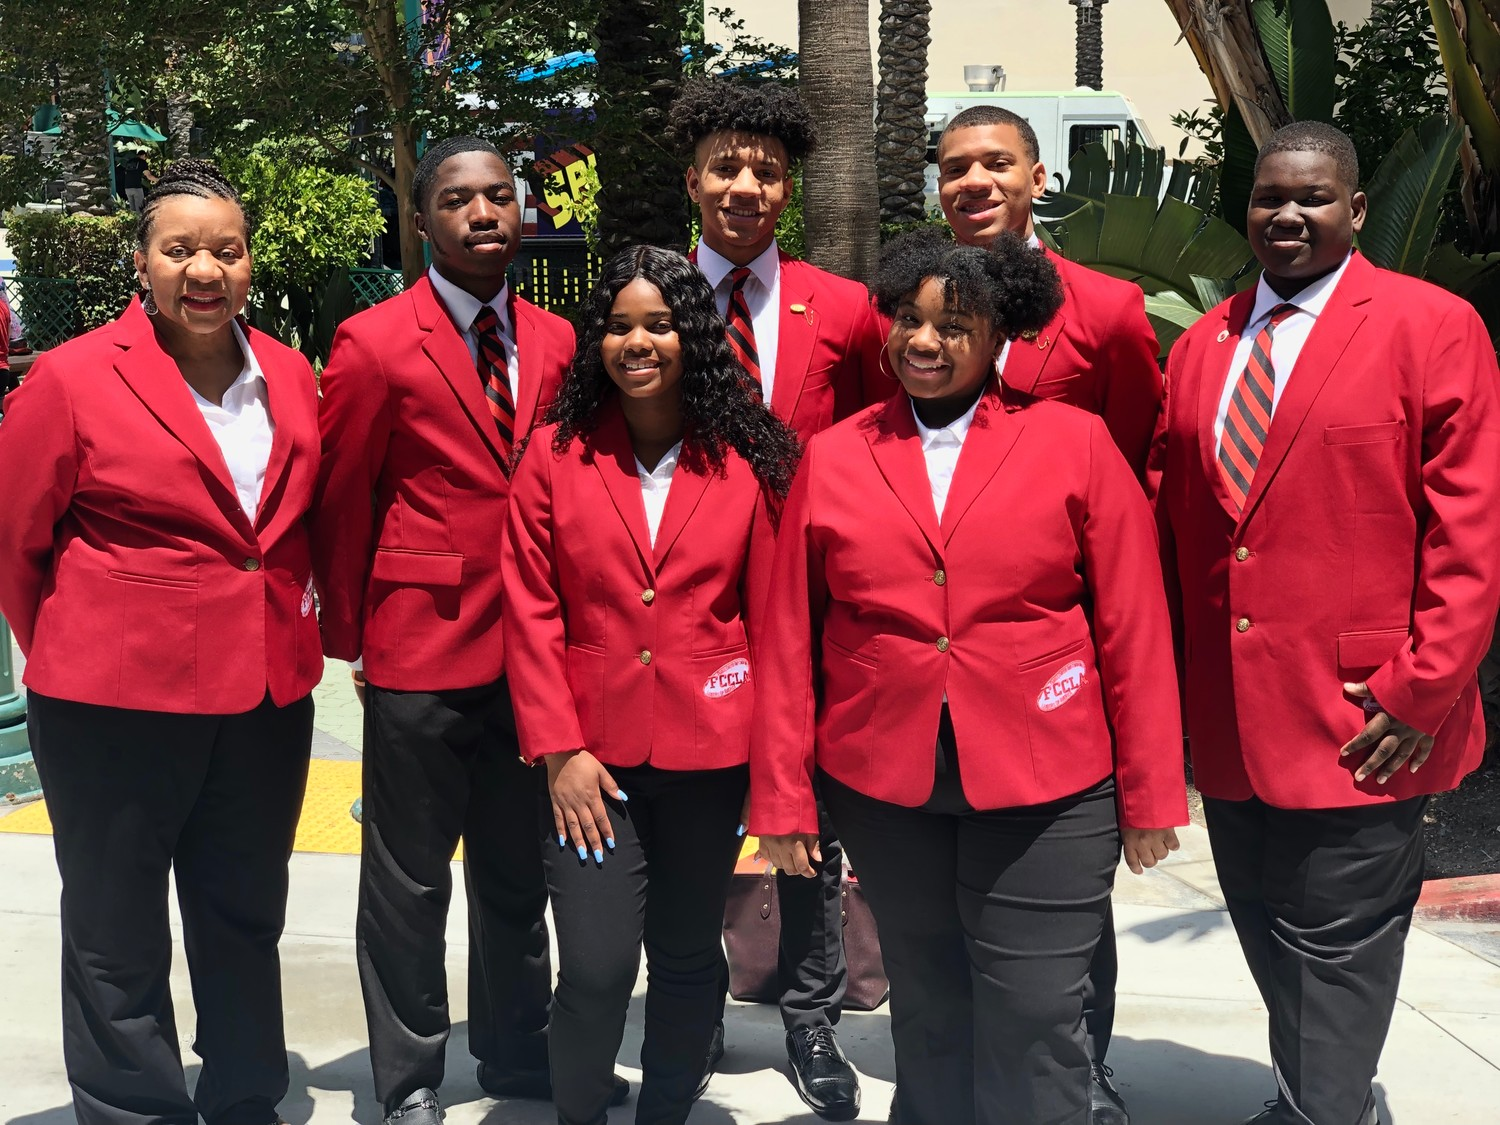 cutline: FCCLA National Conference Attendees